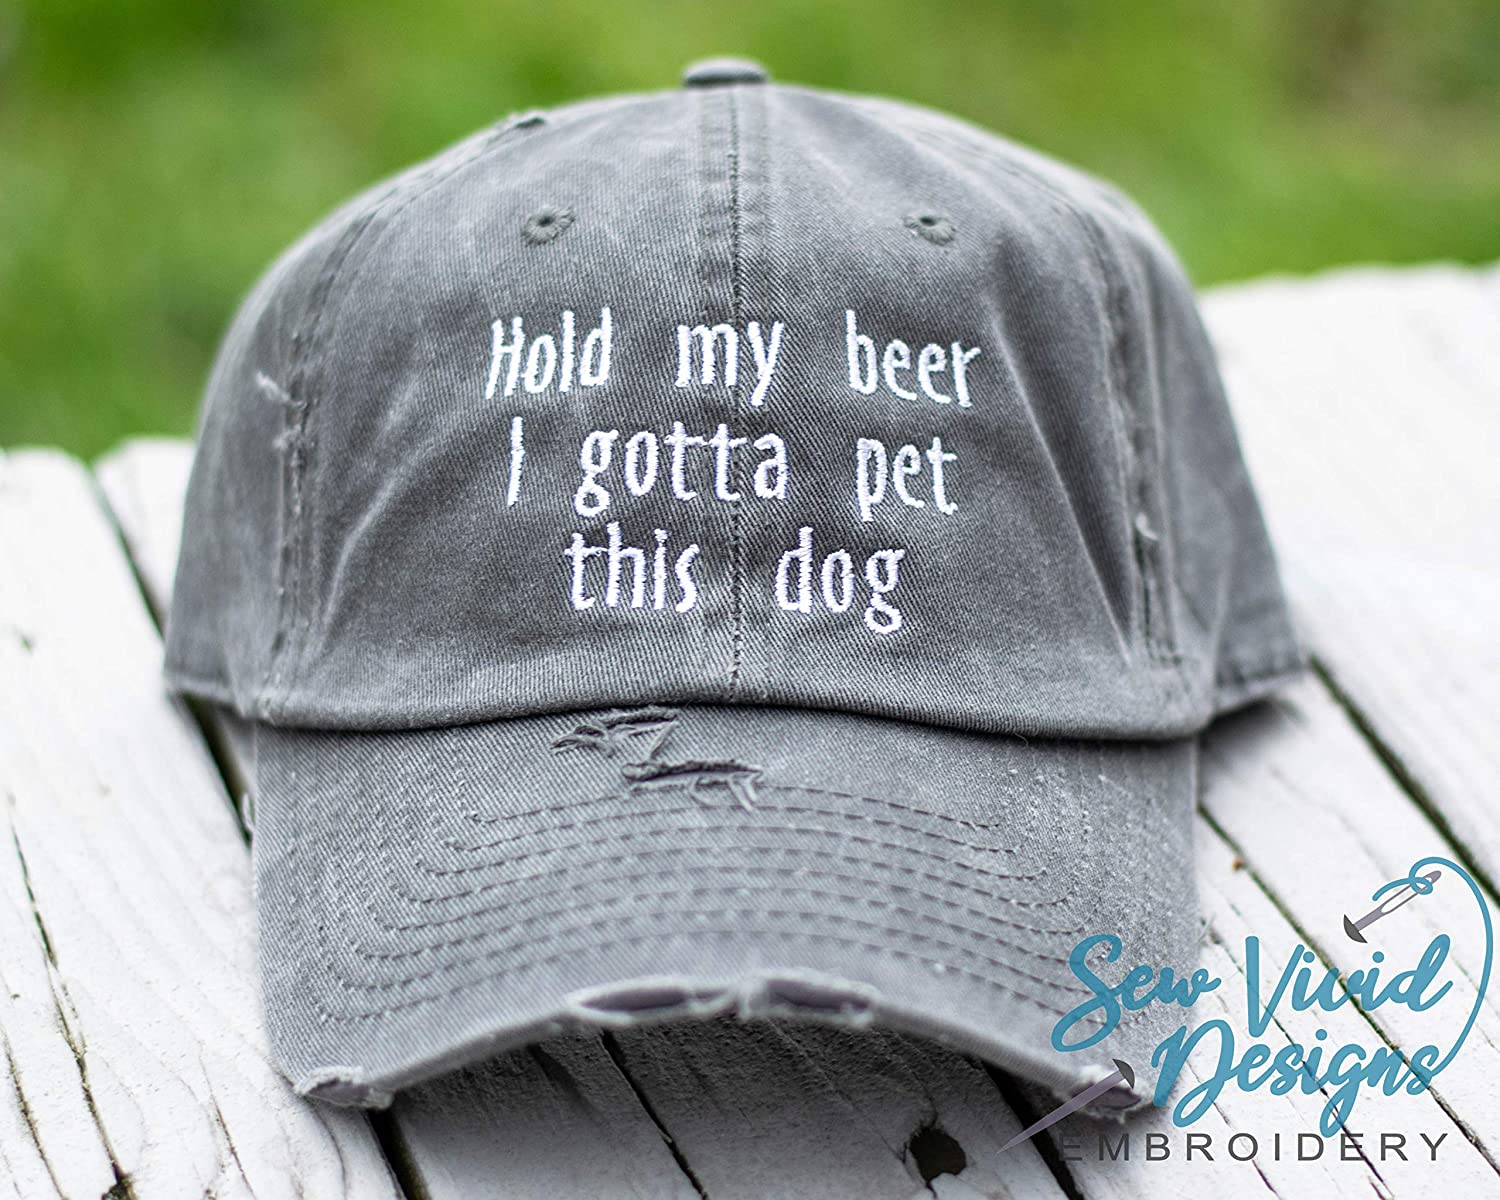 Hold my beer I gotta pet this dog Hat Custom Embroidered Baseball Cap OR Ponytail Hat Personalize it!